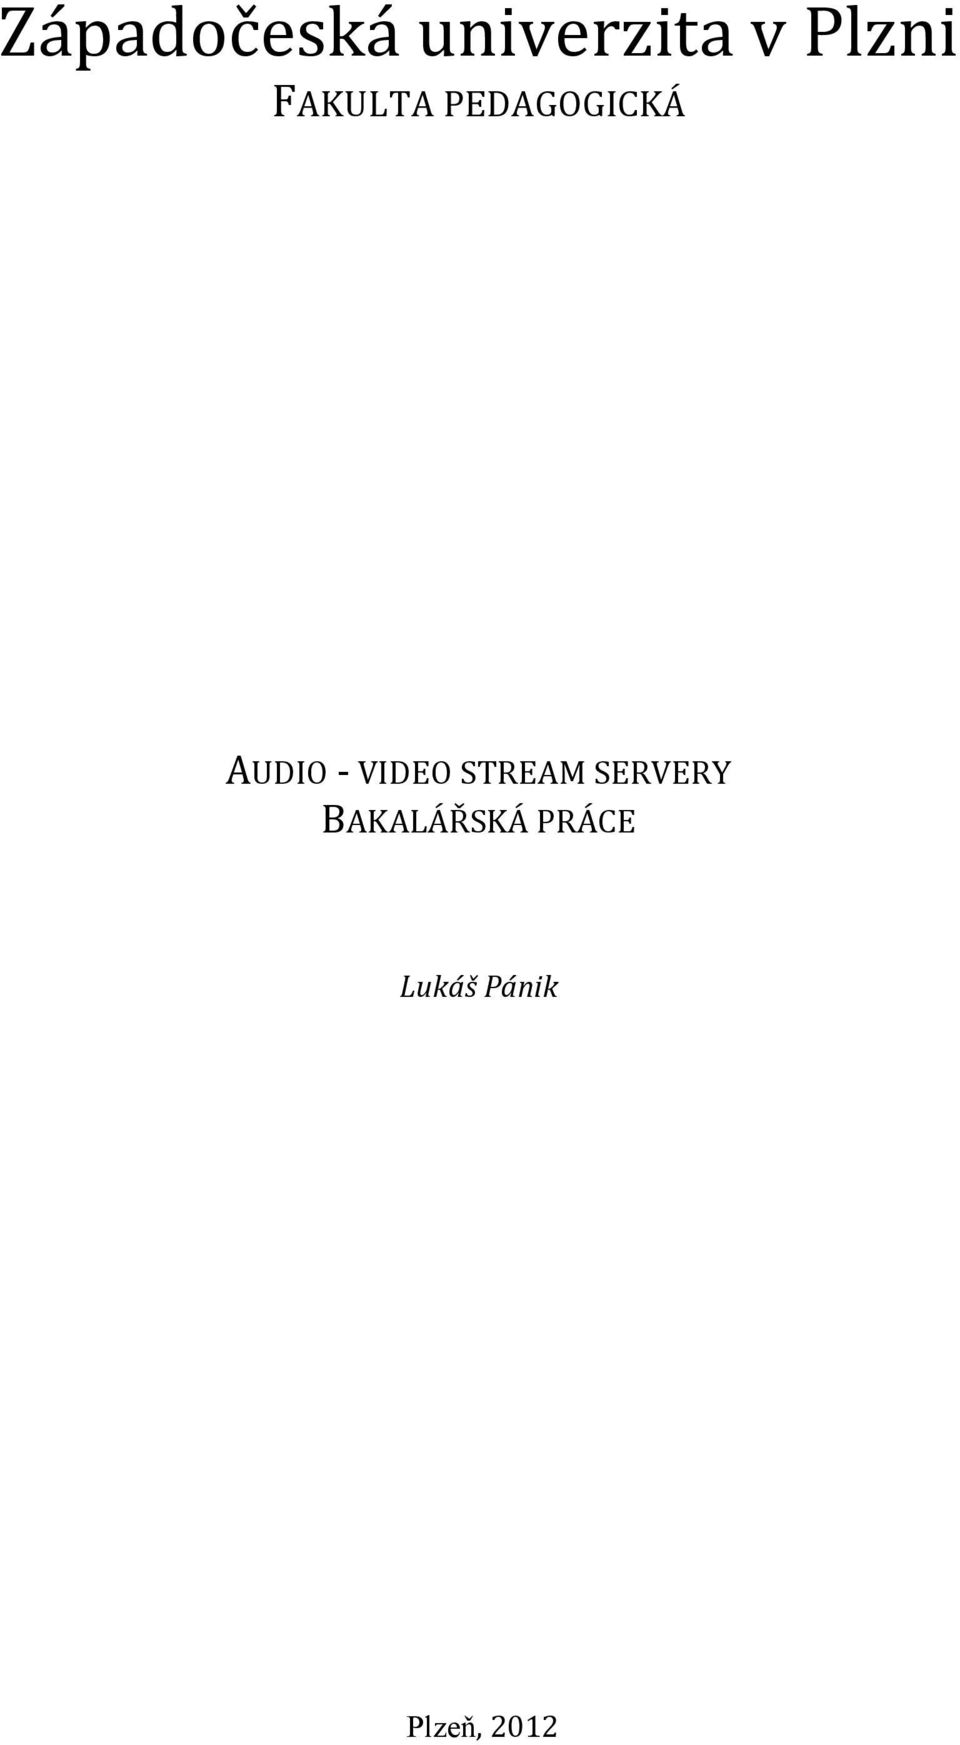 AUDIO - VIDEO STREAM SERVERY